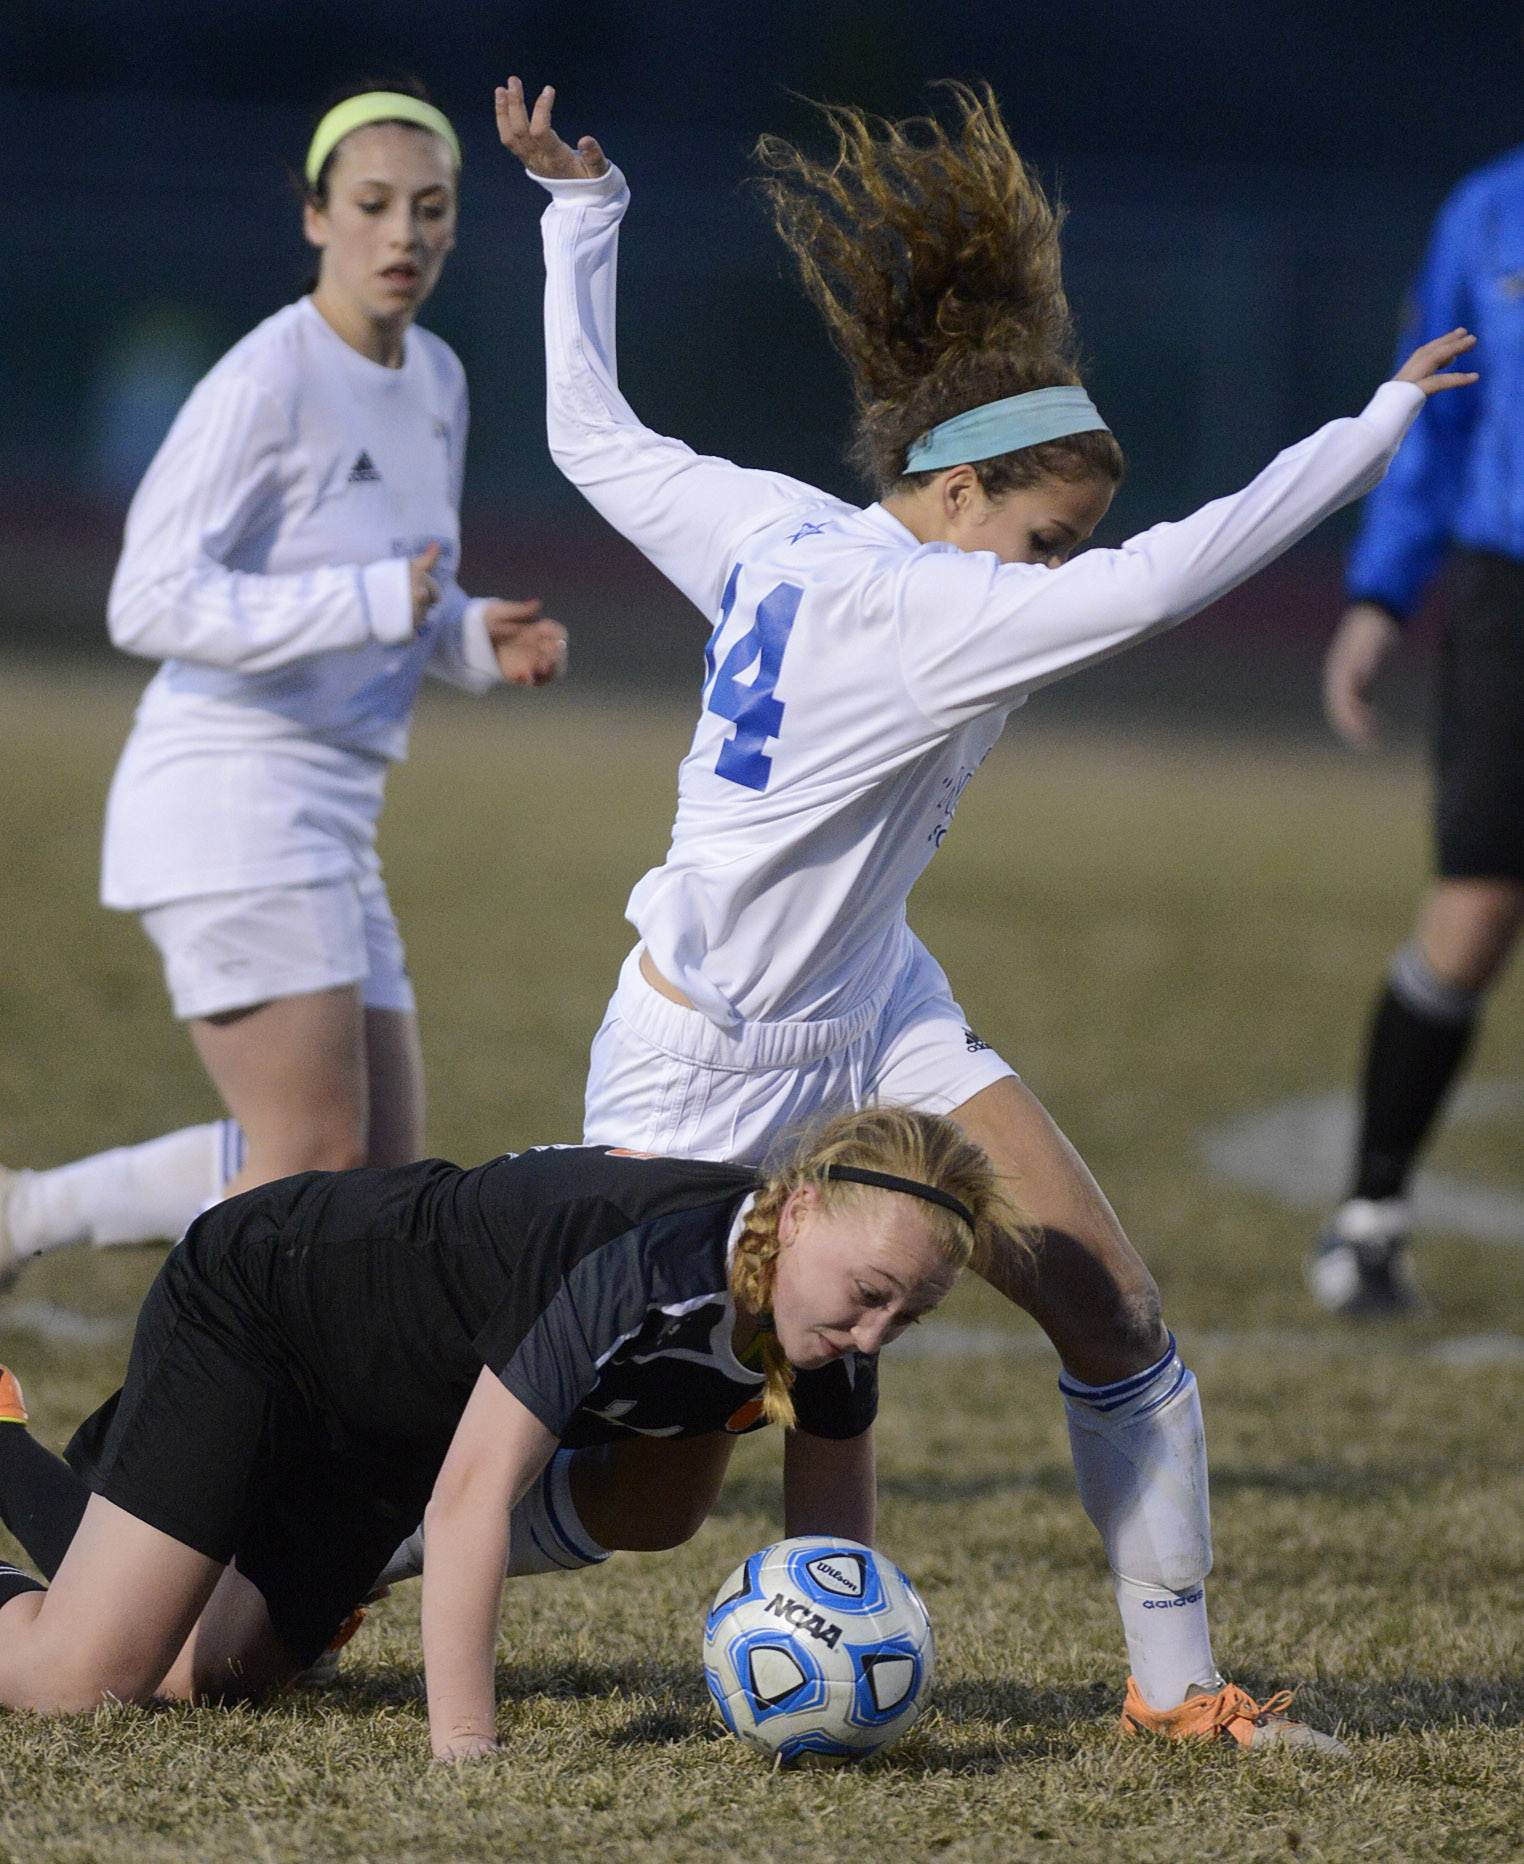 Wheaton Warrenville South's Sarah Burns tries to get upright after stumbling while St. Charles North's Lizzie Parrilli almost tumbles during a scuffle for the ball in the first half on Thursday, April 10.